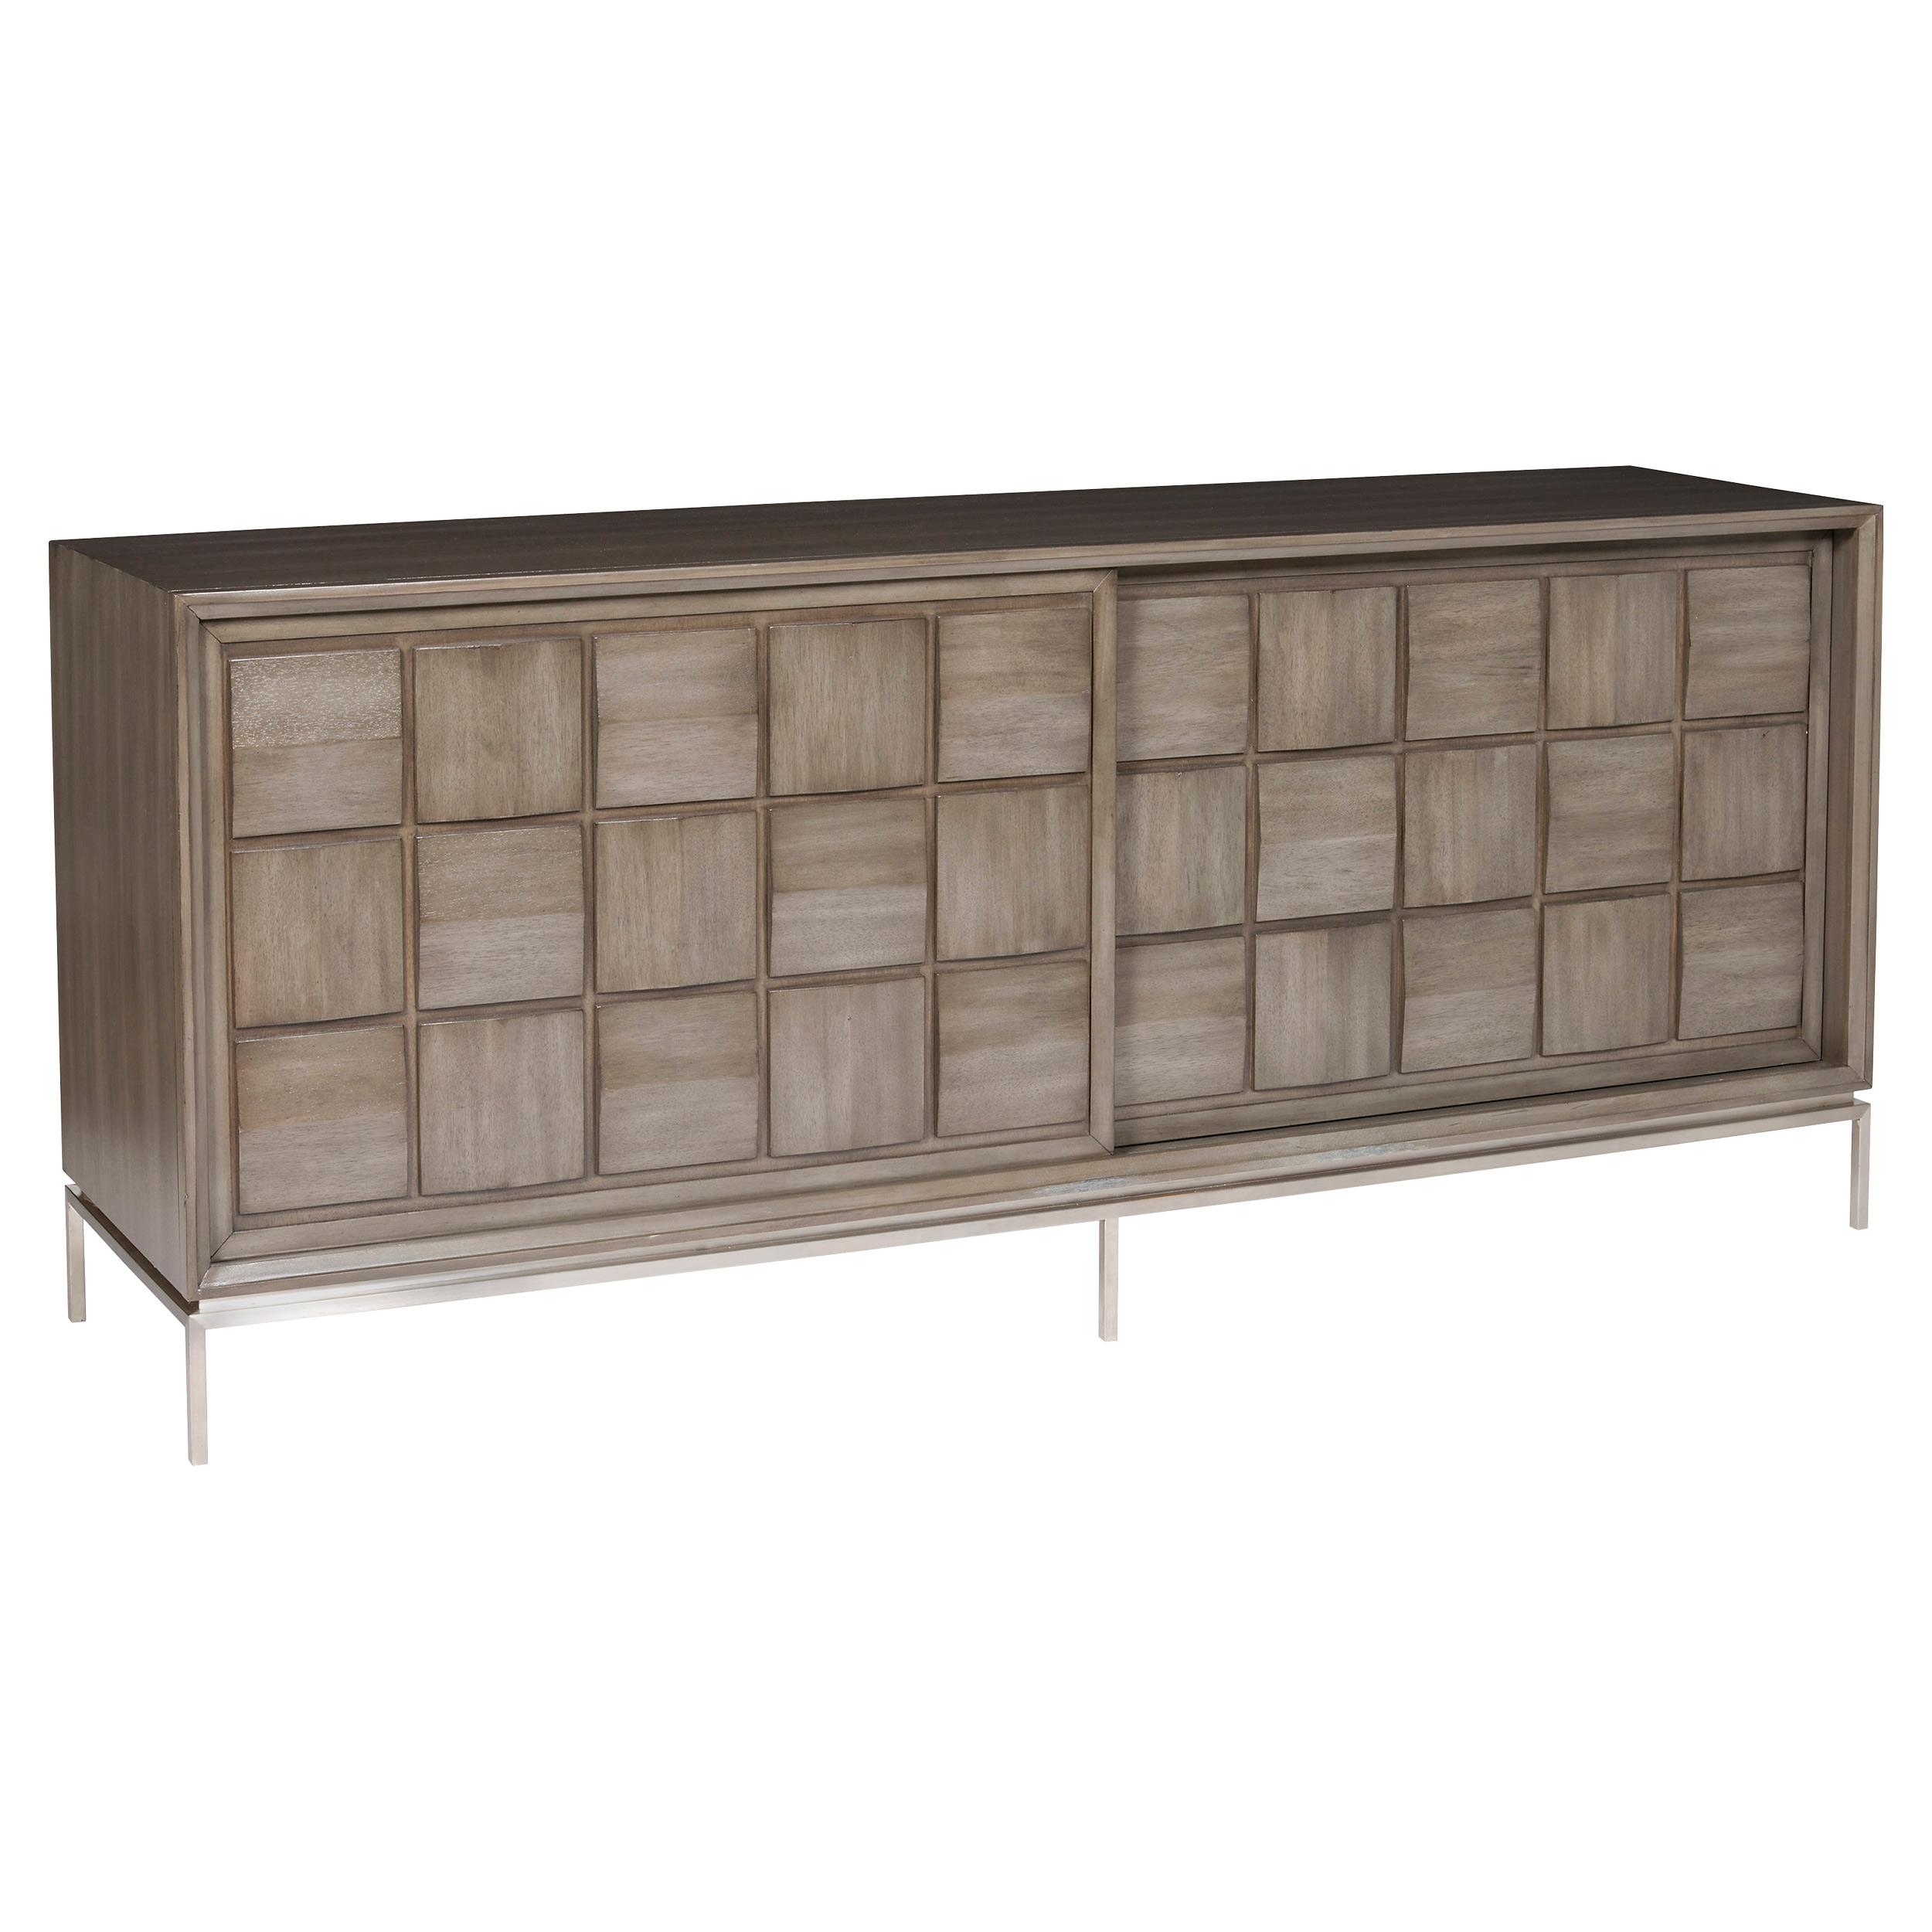 Emilie Rustic Lodge Checkered Grey Walnut Media Cabinet